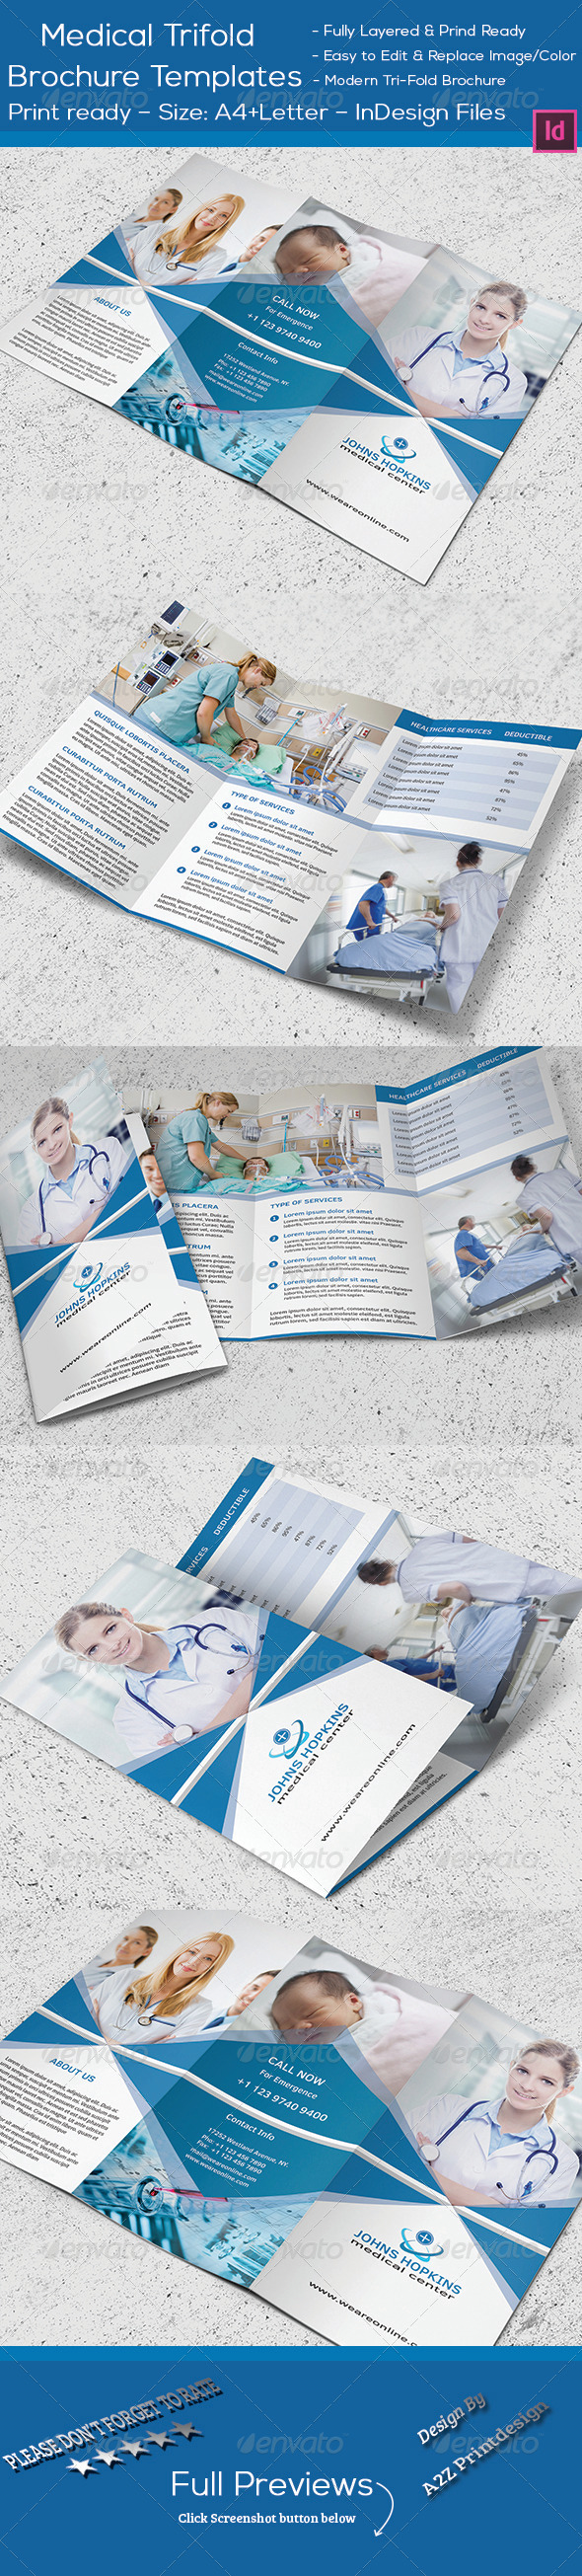 GraphicRiver Medical Trifold Brochure 8257631